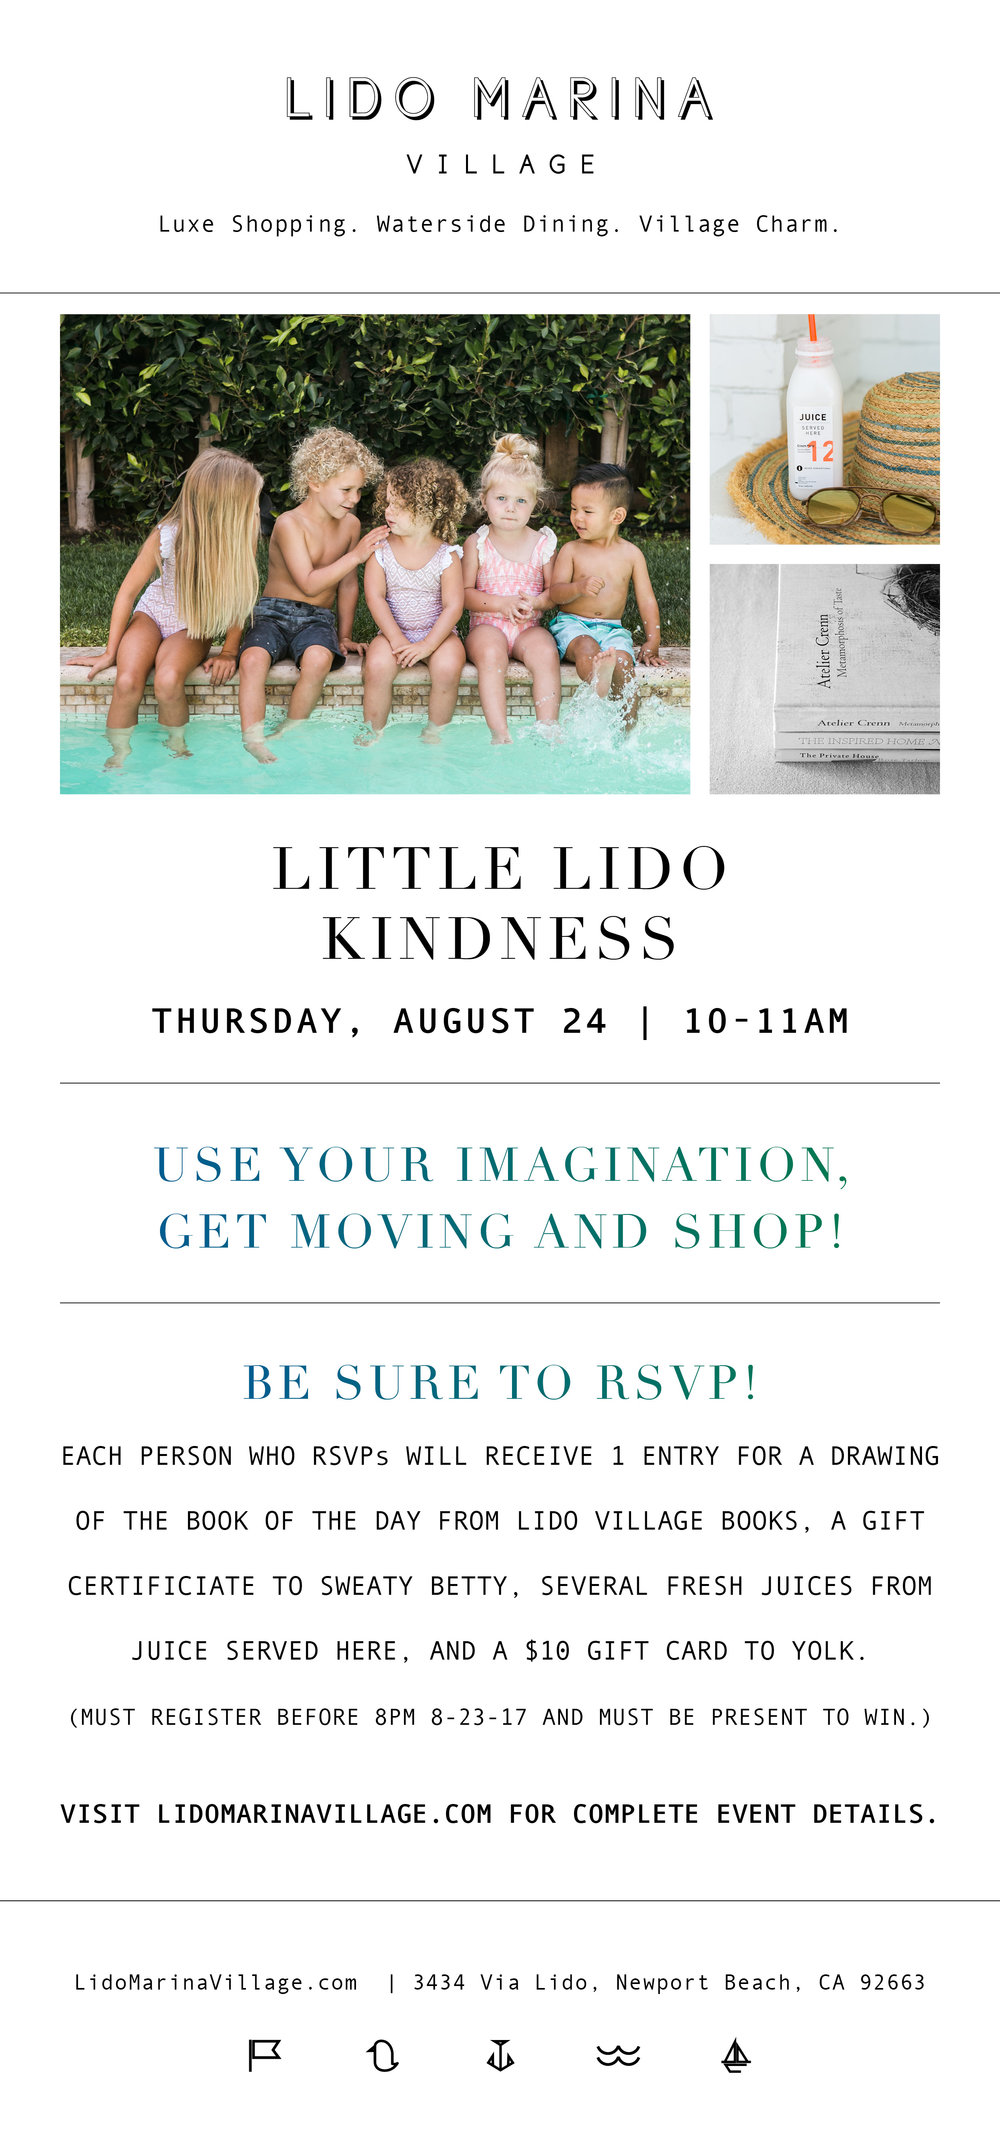 Lido_Little Lido_Aug24_web.jpg